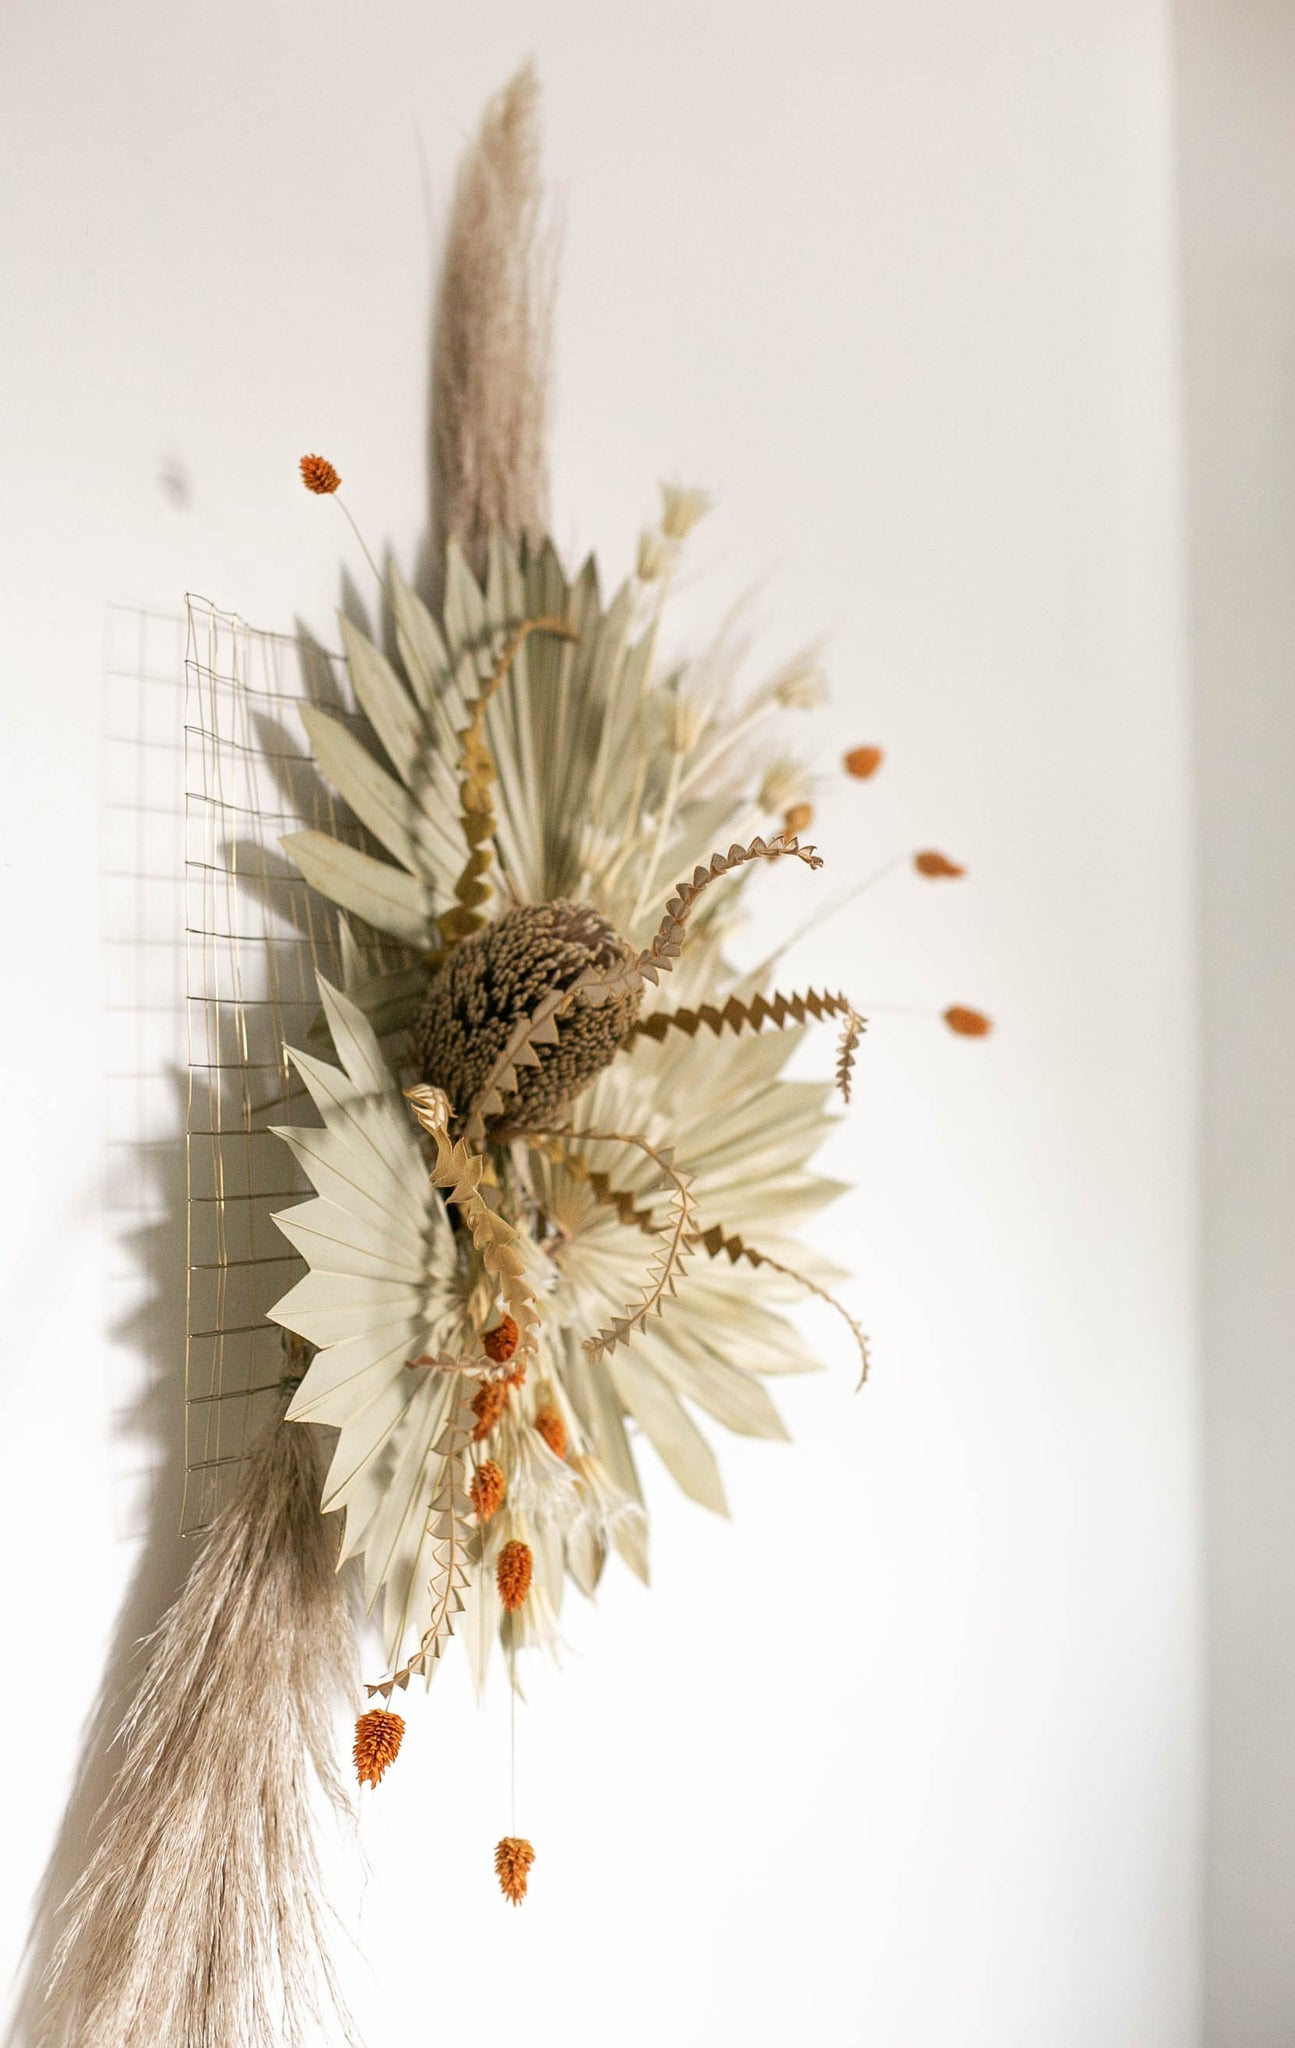 Spring Flower Fête | Dried Flower Wall Hanging - Heroine Flowers